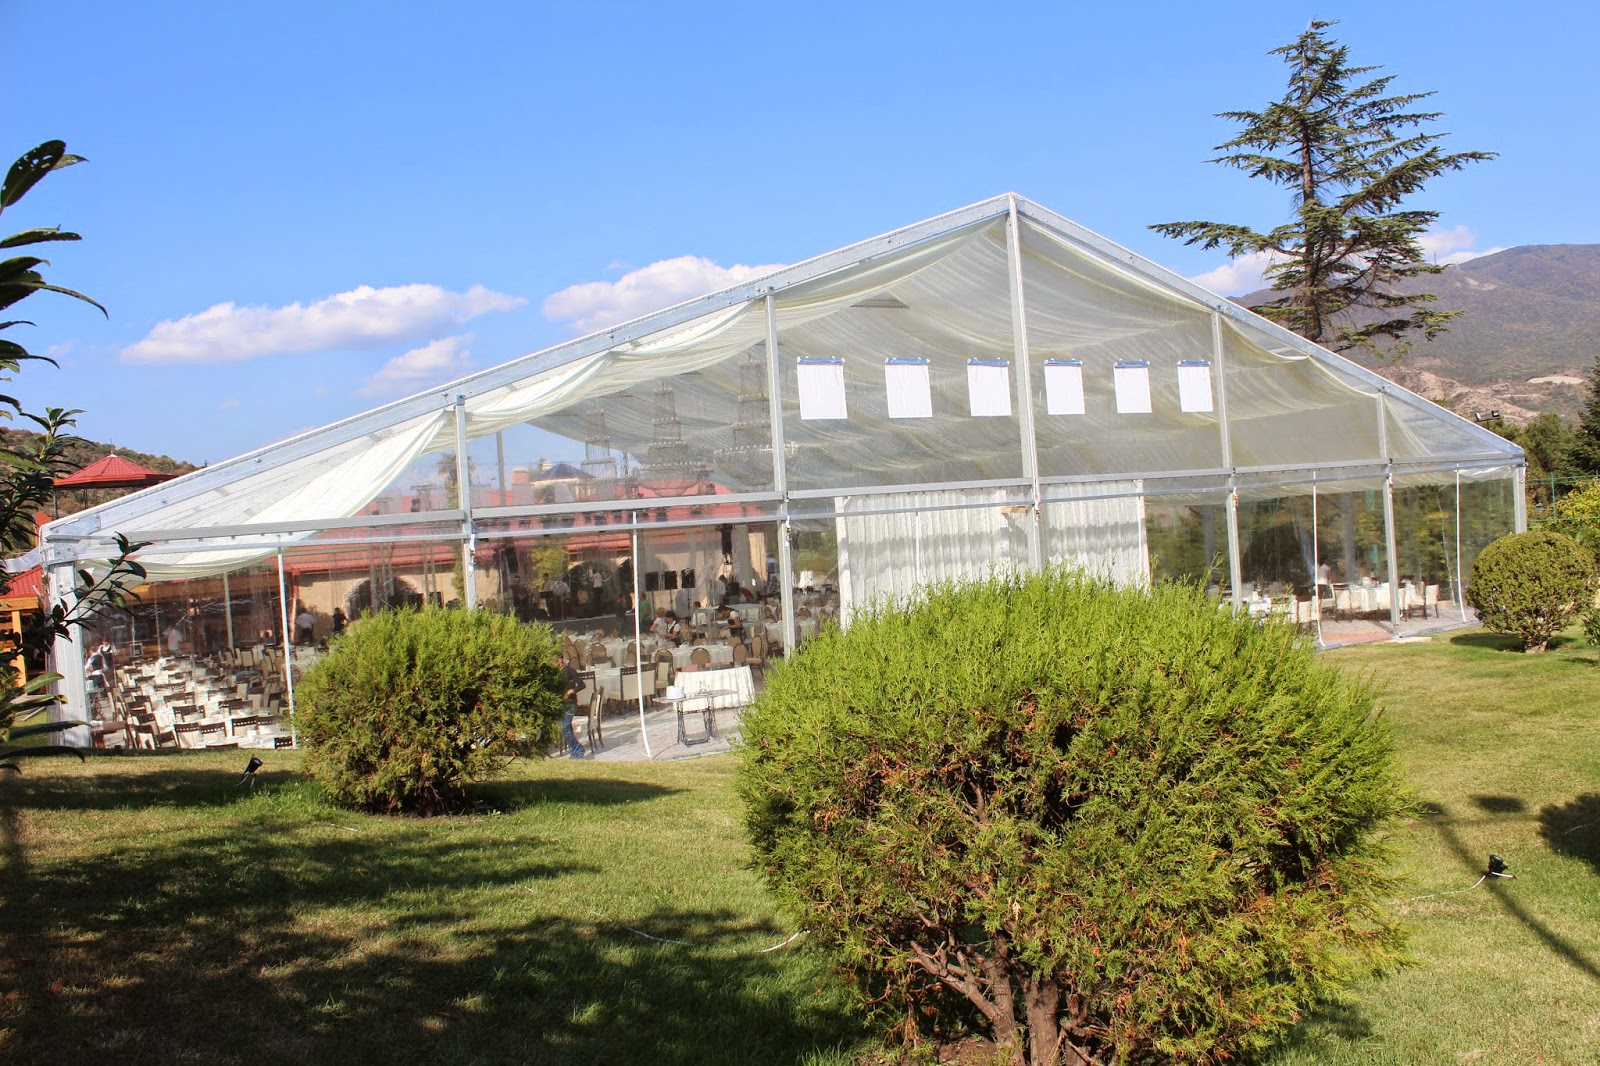 The great idea of making the marquee tent totally transparent makes your outdoor weddingbackyard events unique and attractive. & Shelter Tents: Transparent Wedding Tent makes your wedding ...